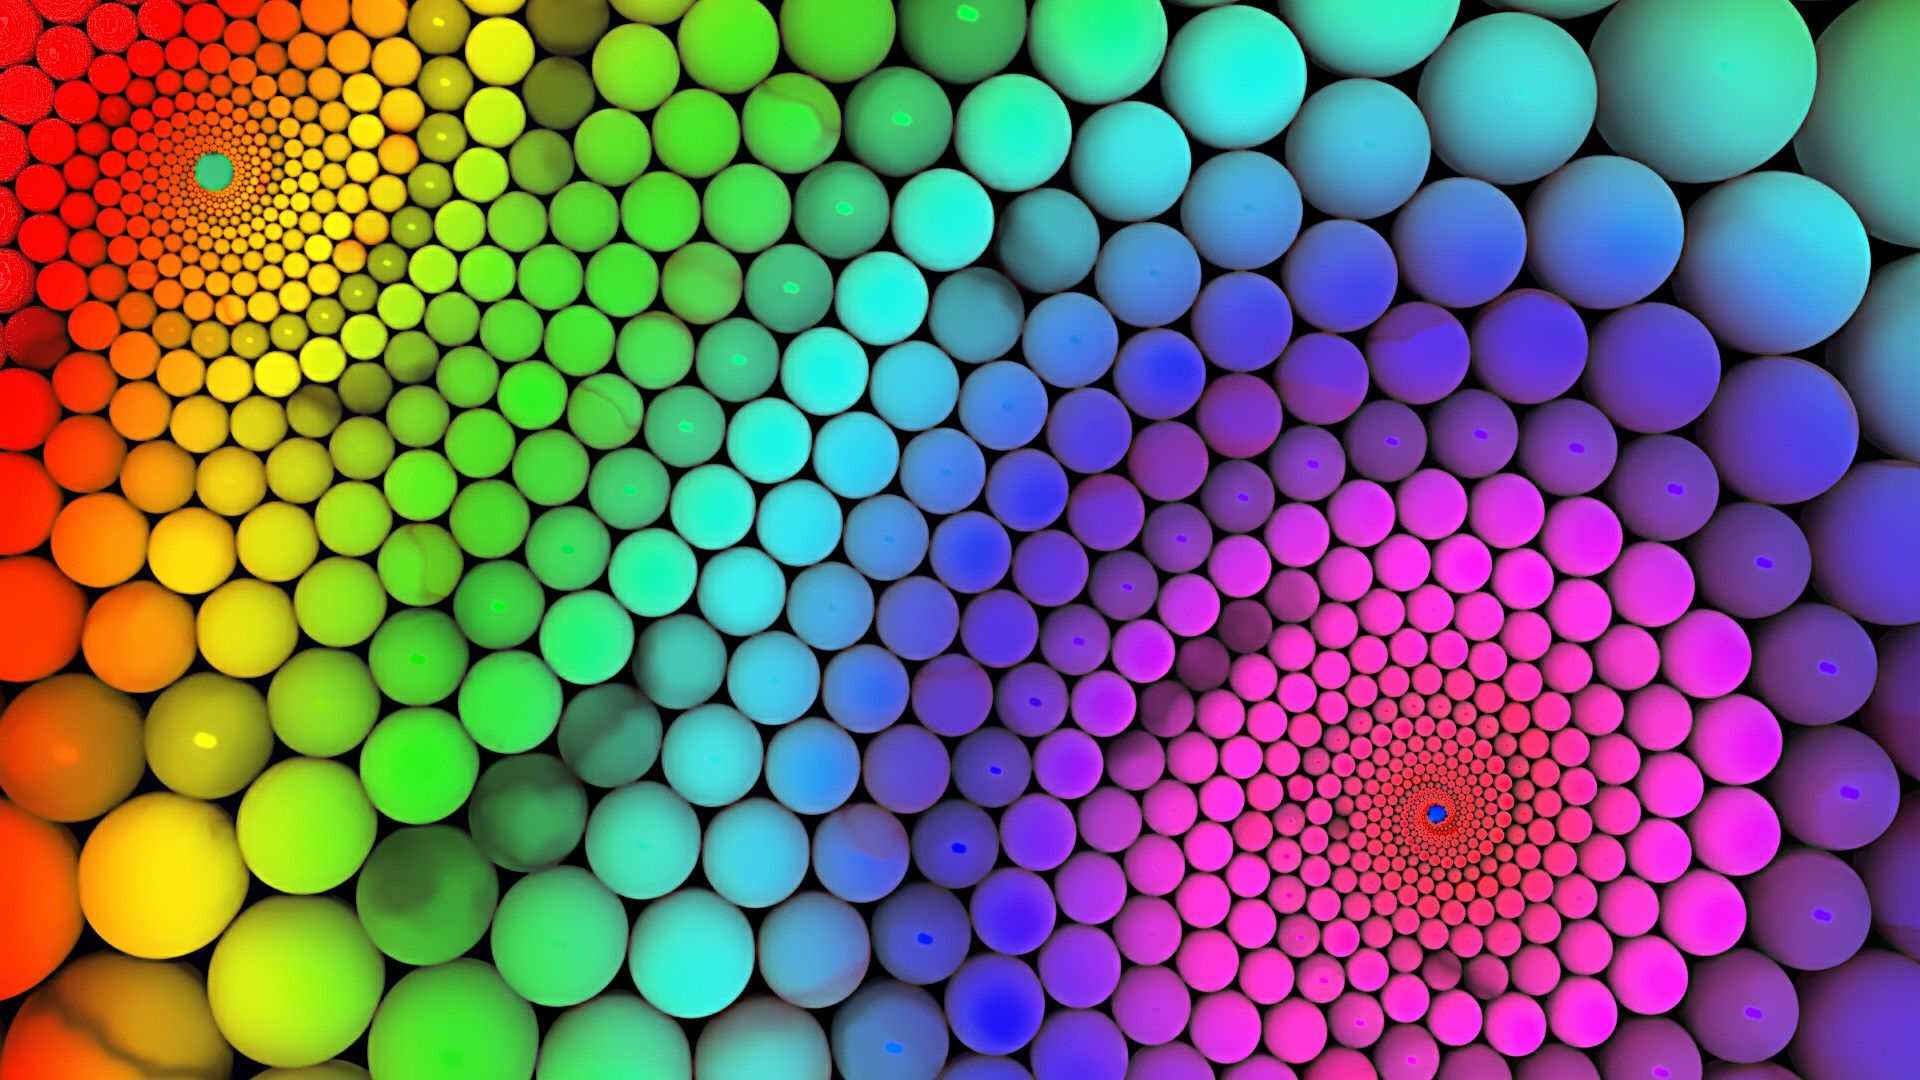 Fabulous Multicolor Bubbles background